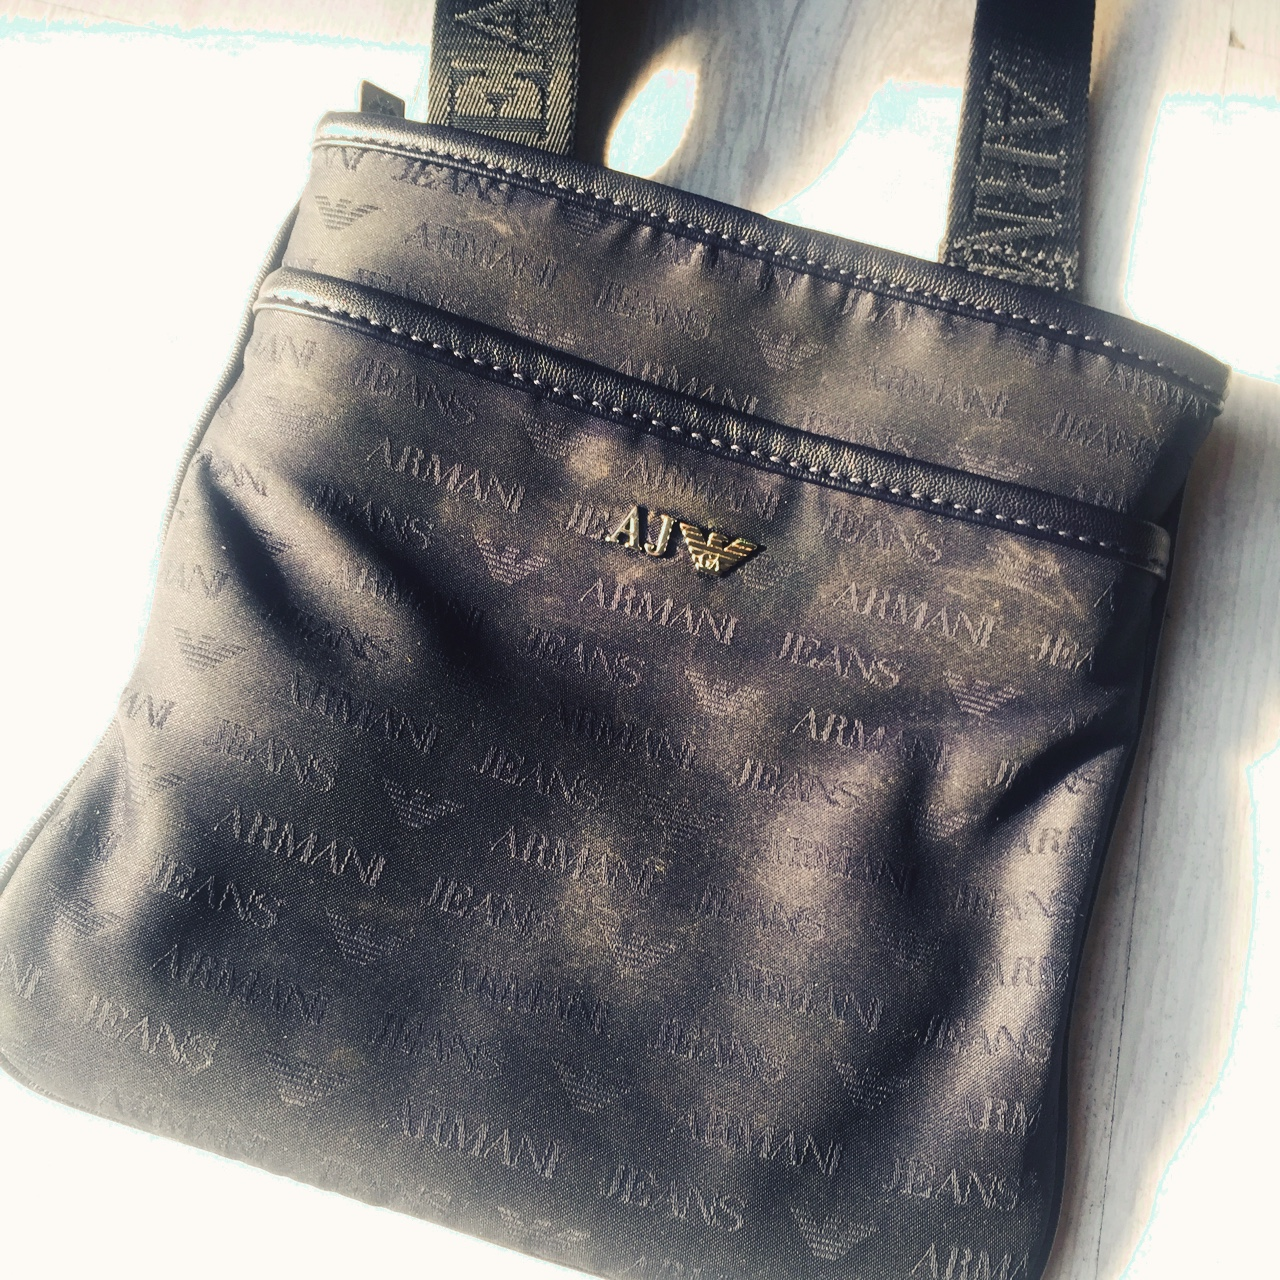 c37a8bff ARMANI JEANS MAN BAG 10000% REAL BOUGHT FROM... - Depop